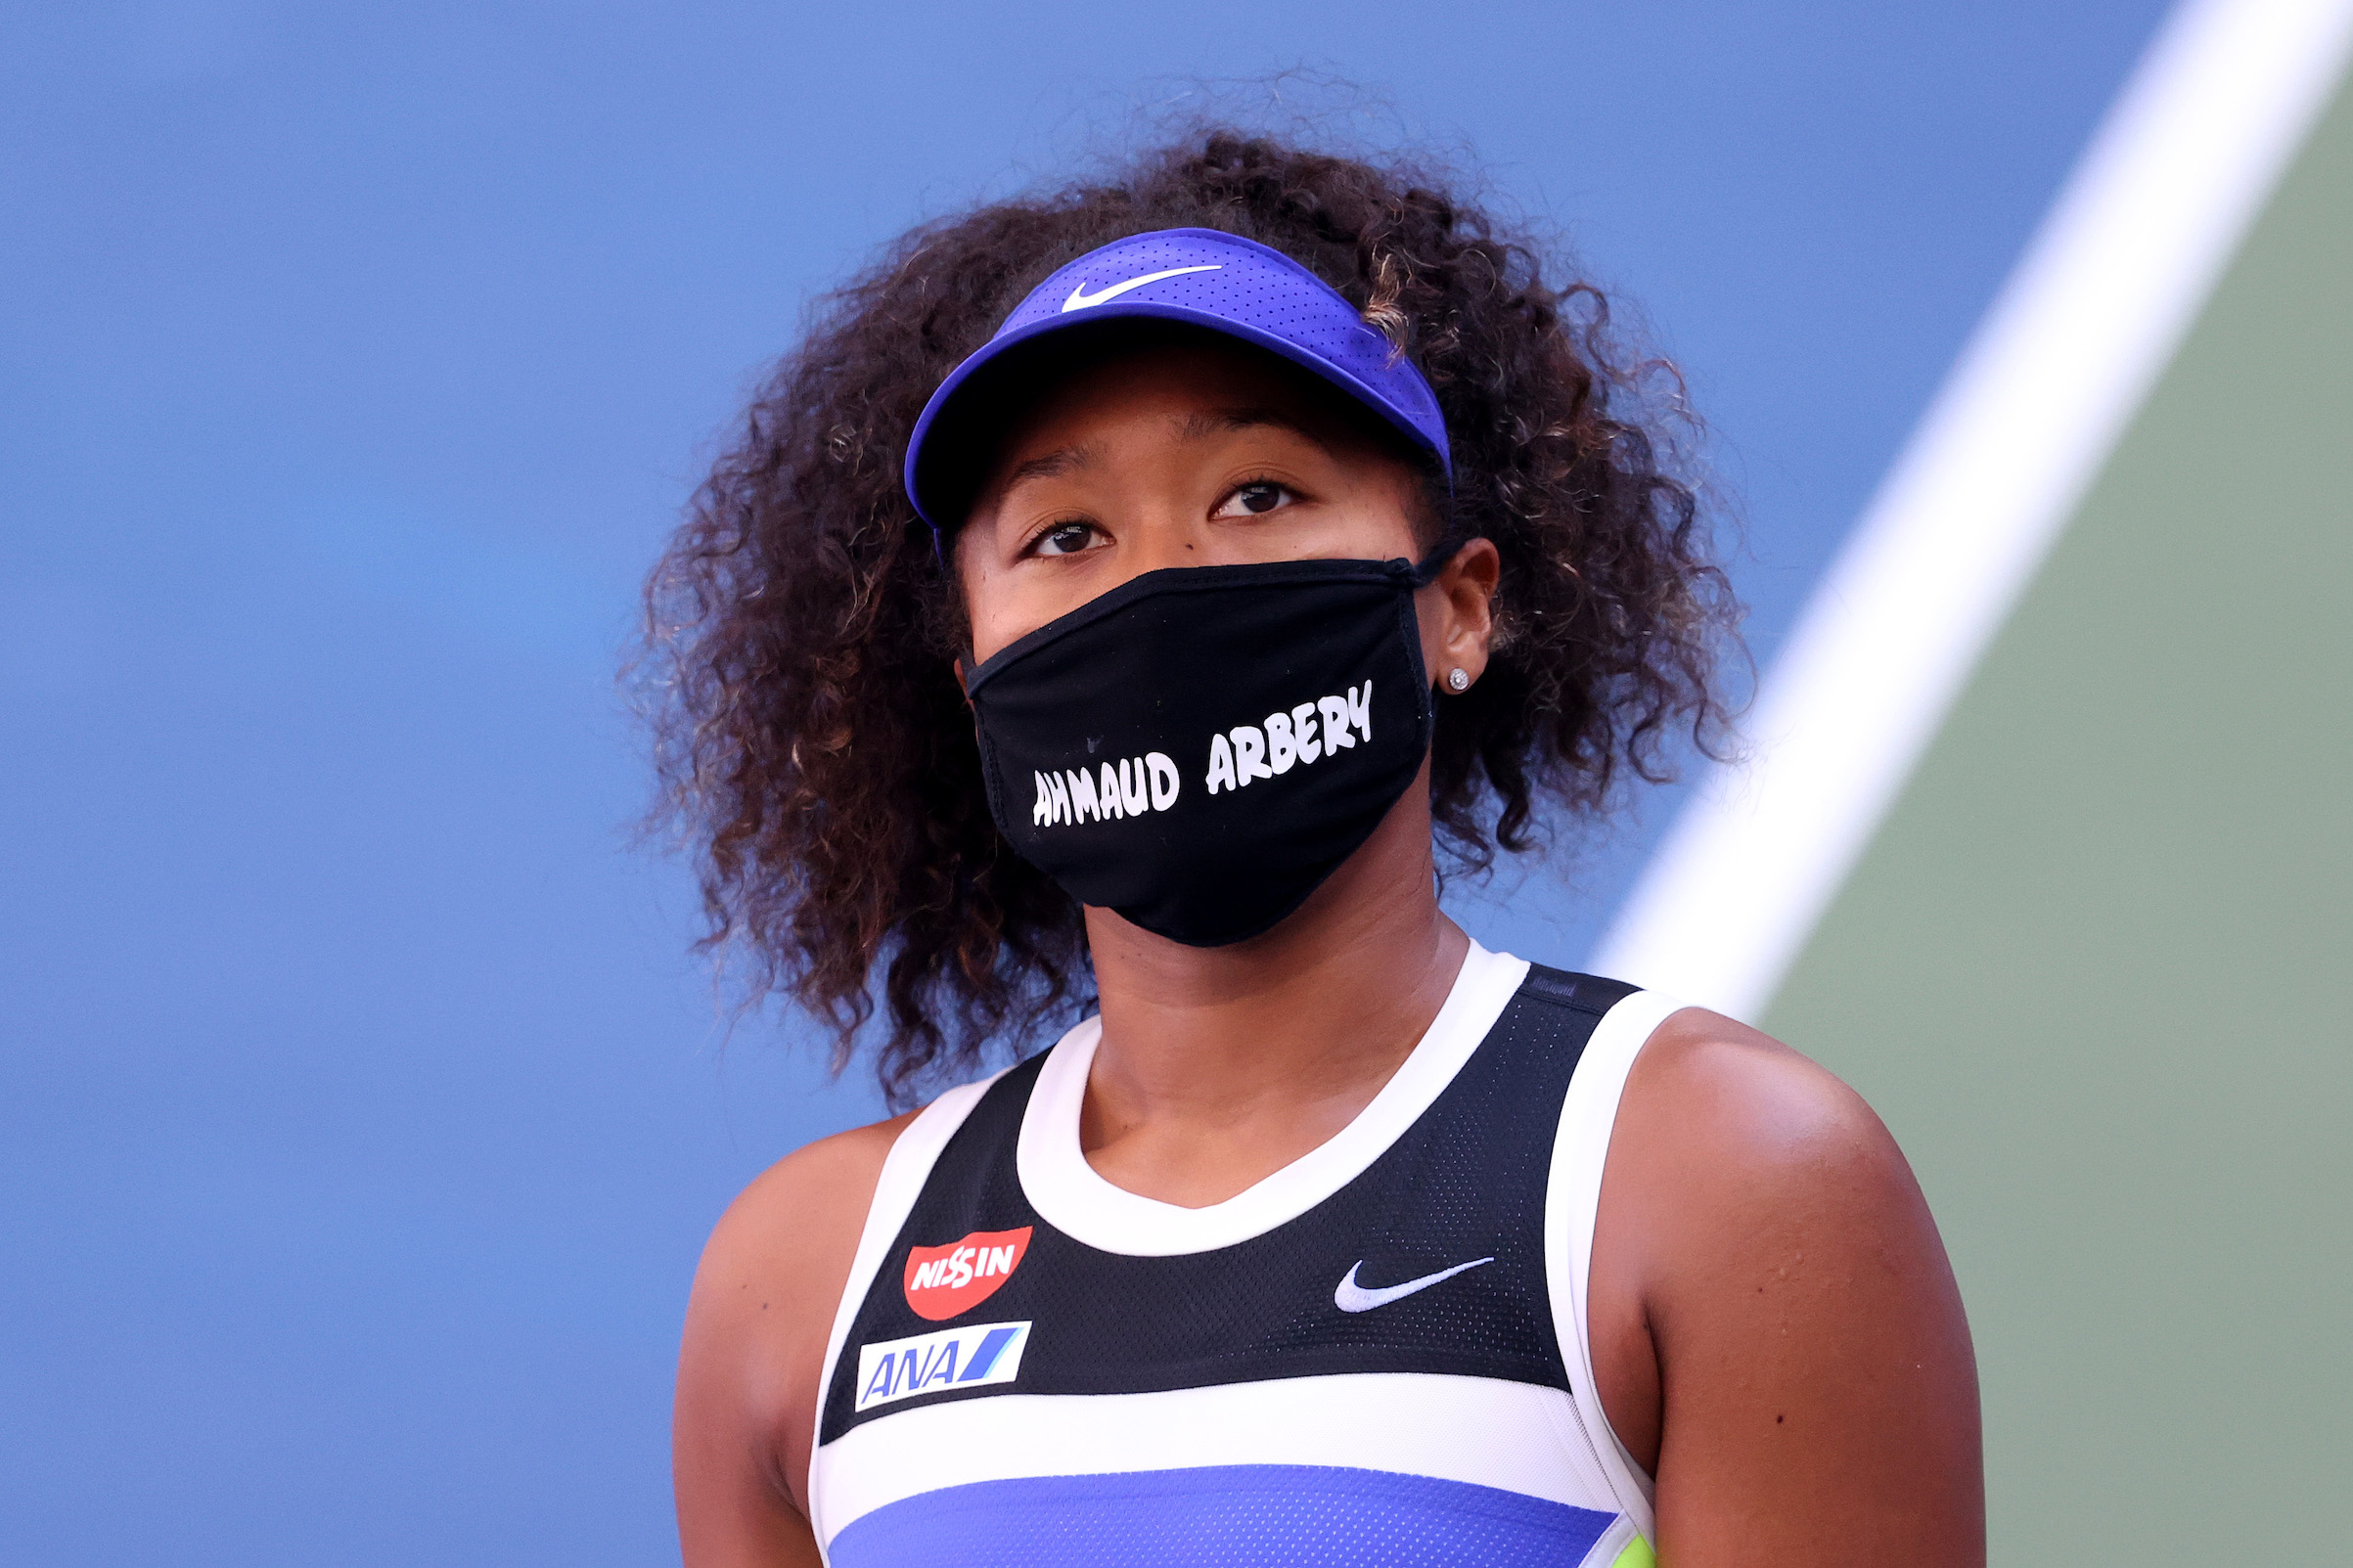 Naomi Osaka of Japan wears a protective face mask with the name Ahmaud Arbery stenciled on it after winning her Women's Singles third round match on Day Five of the 2020 U.S. Open in New York City.